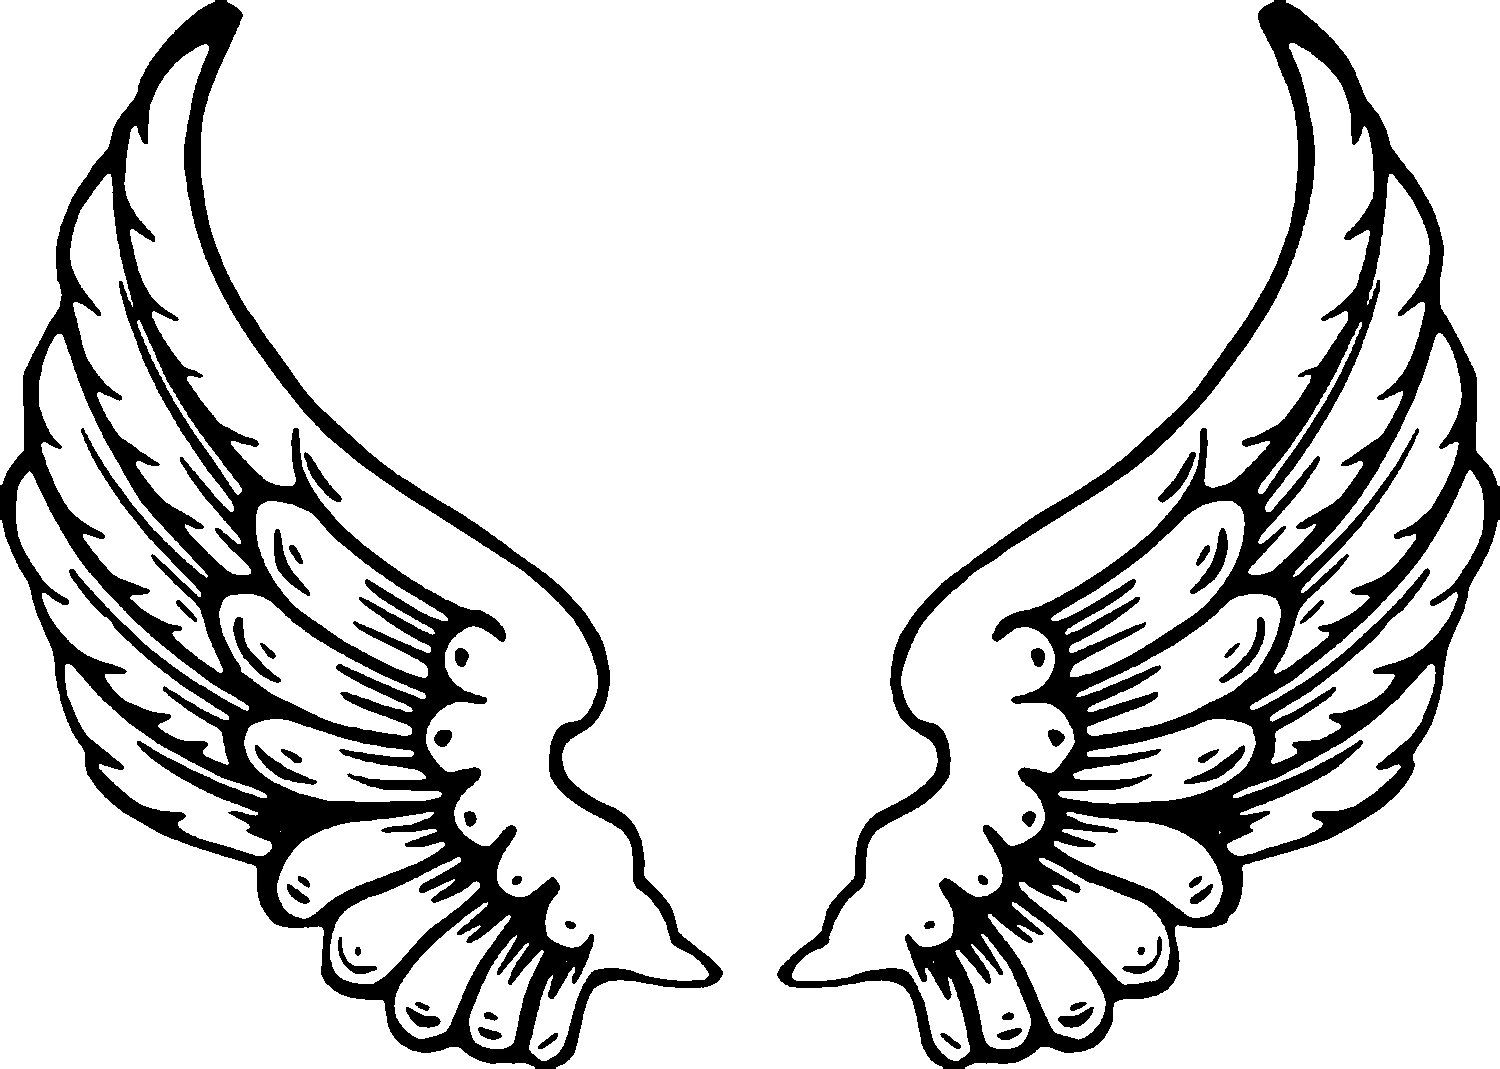 wings coloring pages coloring pages for cancer to print | Free Printable Angel Coloring  wings coloring pages